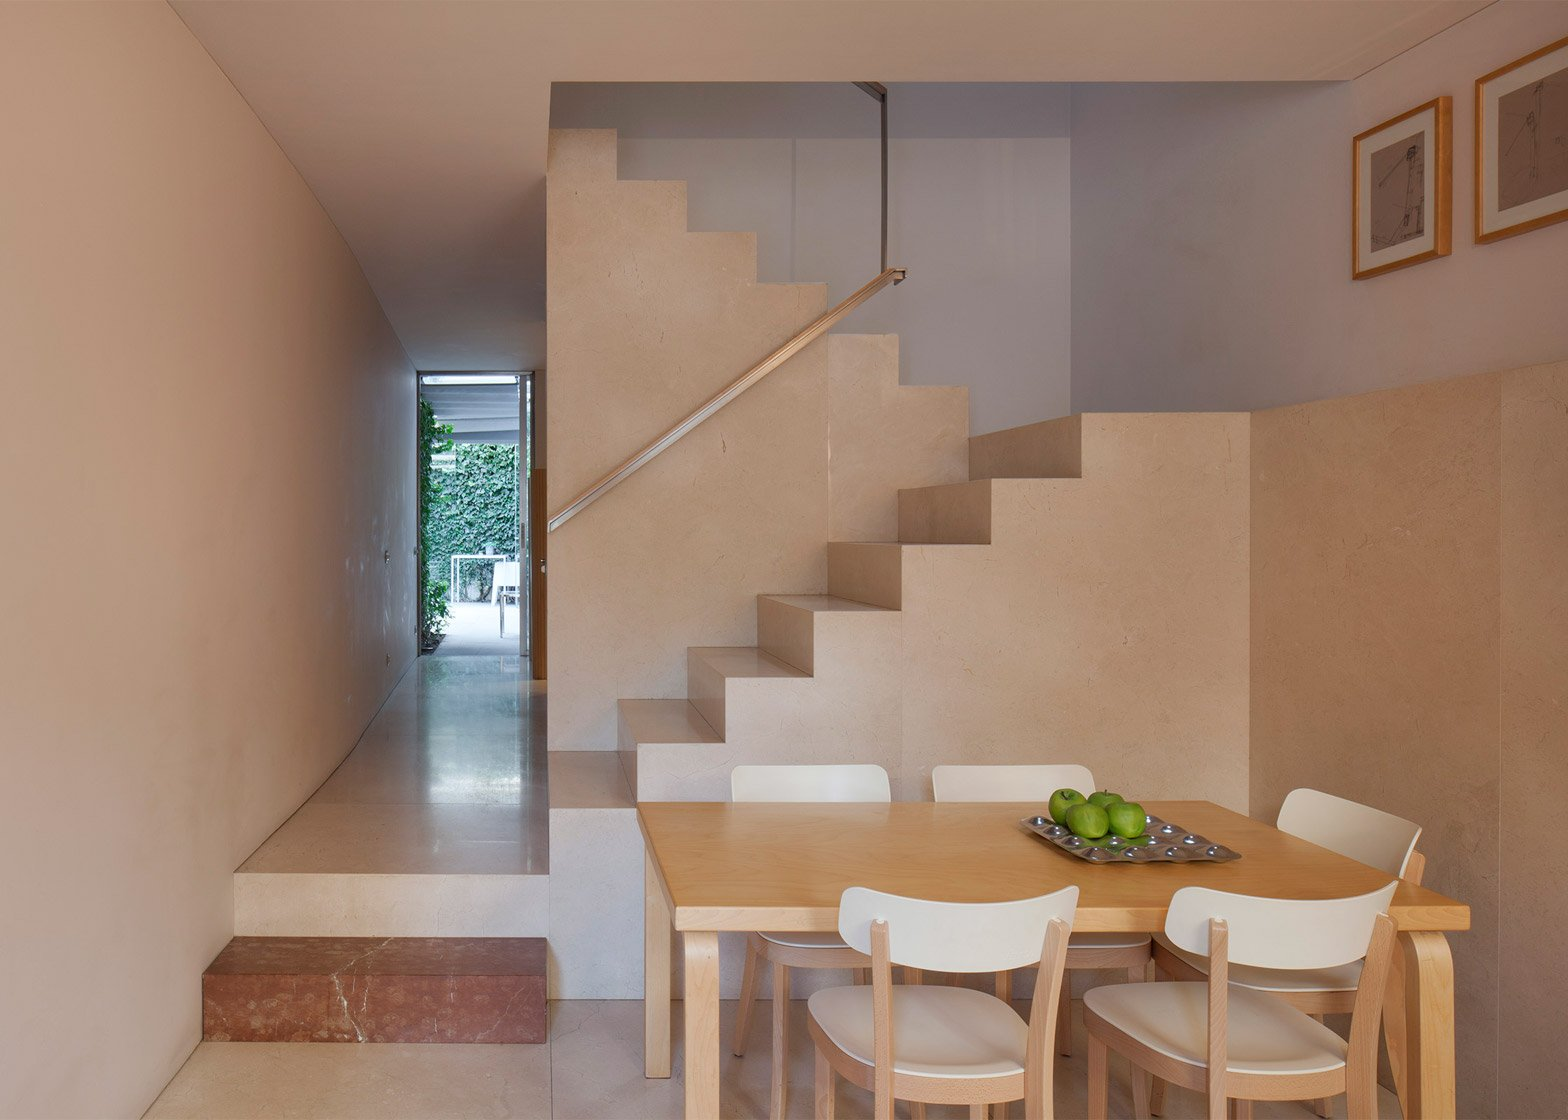 At Home De flat by eduardo souto de moura has tranquil courtyards